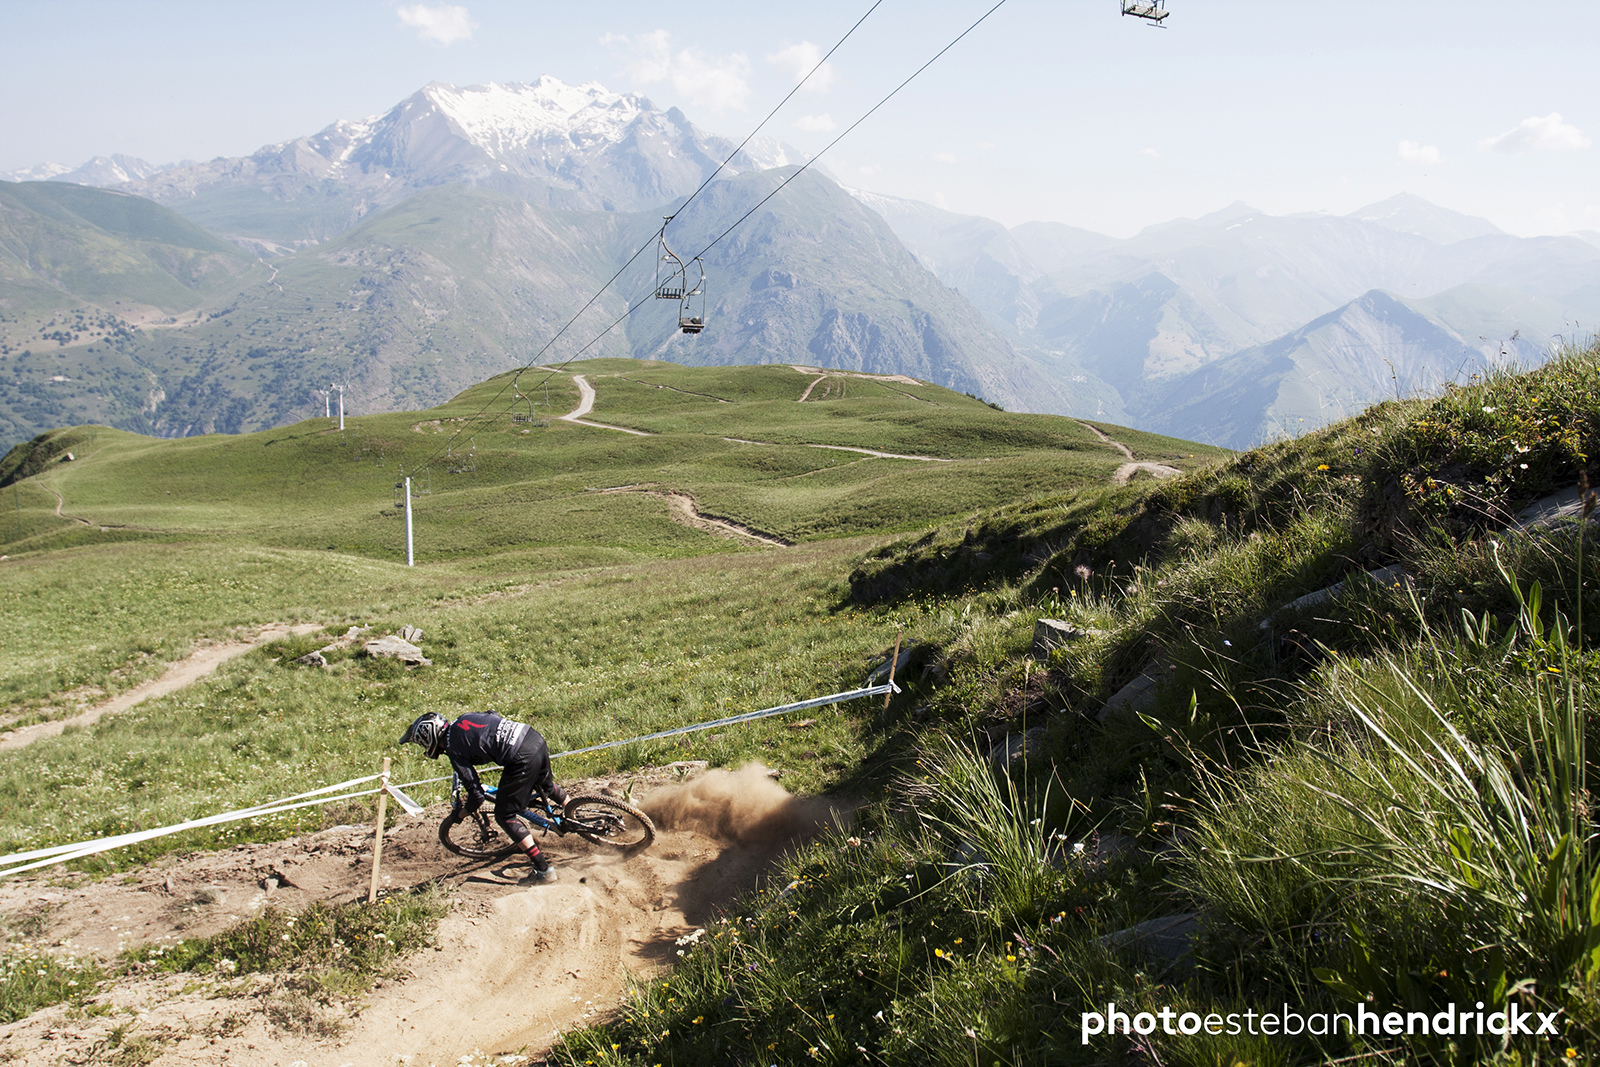 Day one of training in Les Deux Alpes, France for the Enduro World Series. SS1, top of the track. Photo by Esteban Hendrickx - estebanhe.com